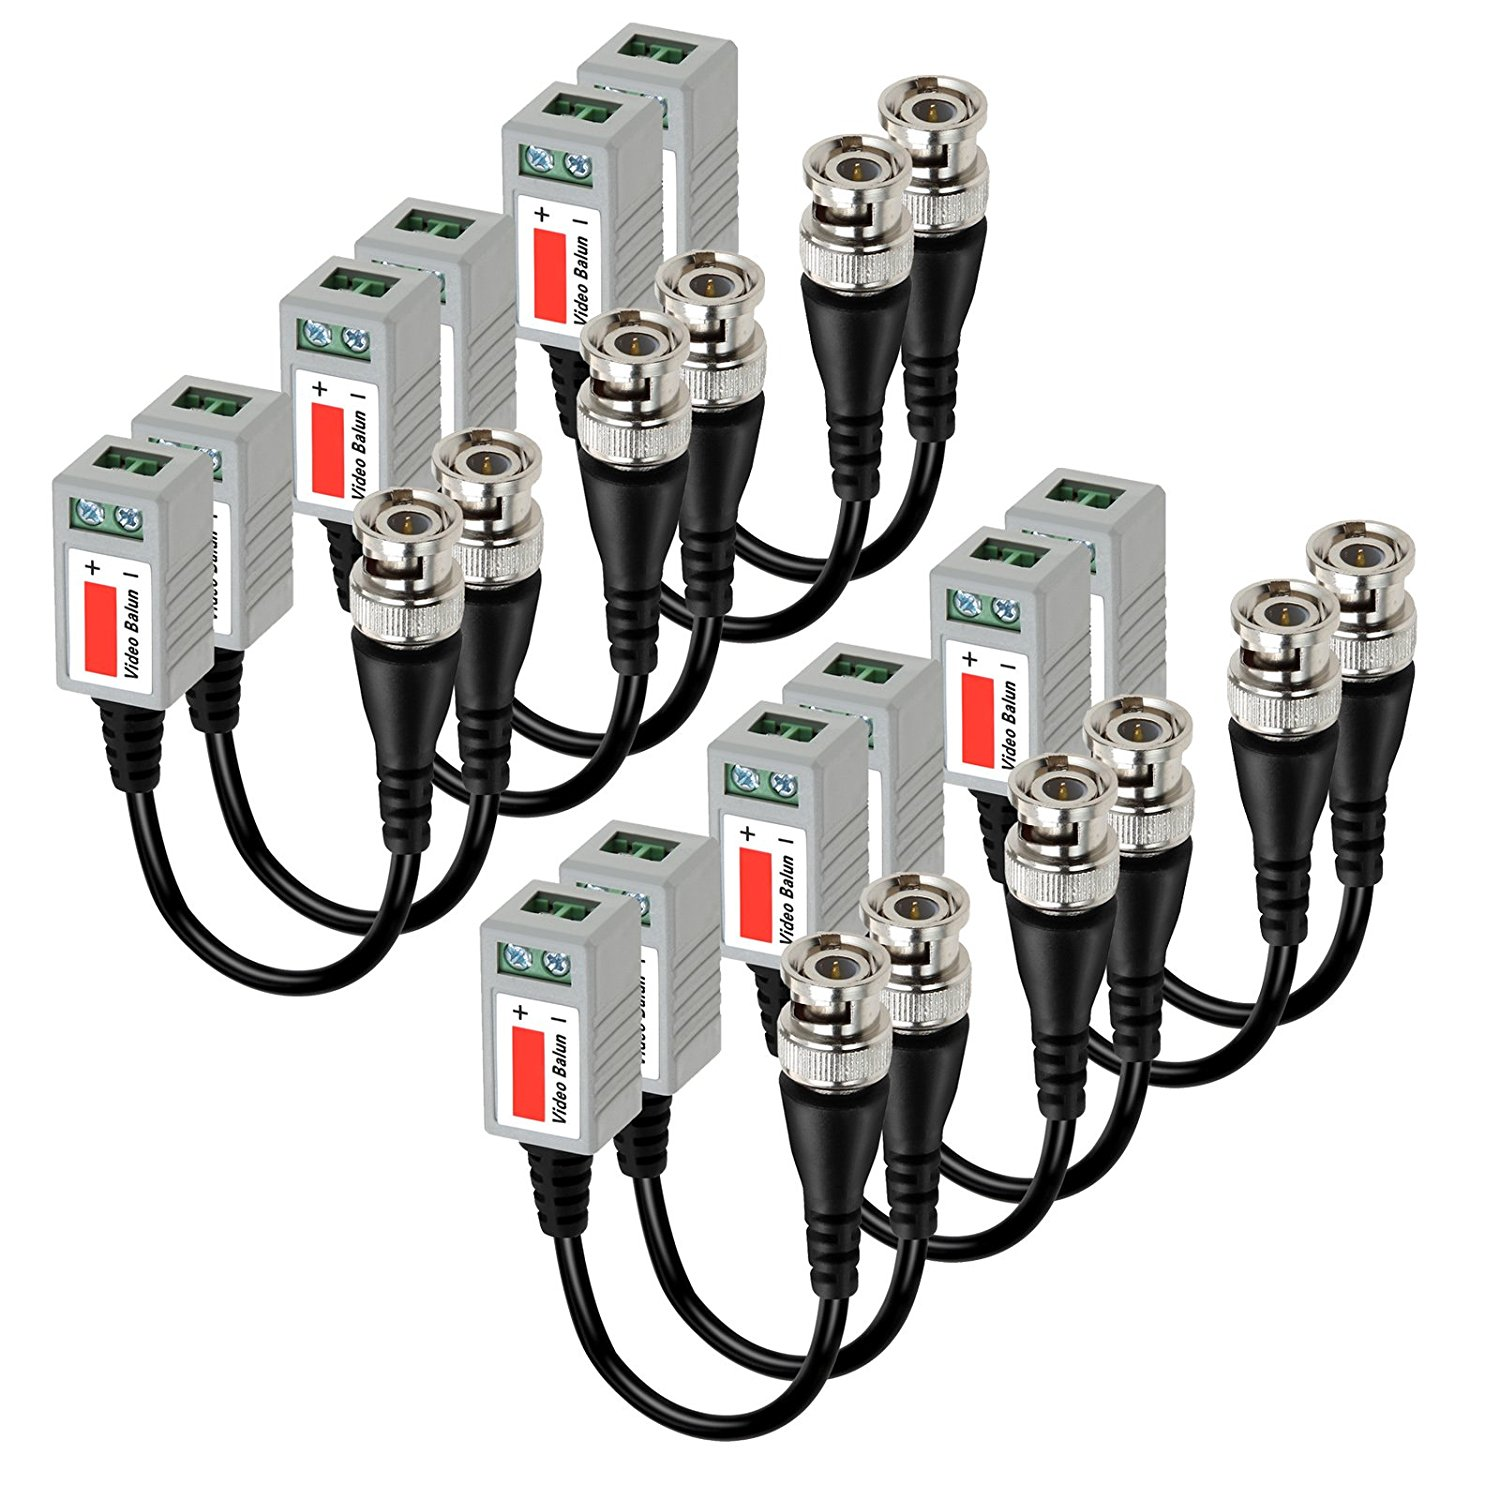 12 Pcs Camera CCTV BNC CAT5 Video Balun Passive Transceiver Cable Adapter Connector